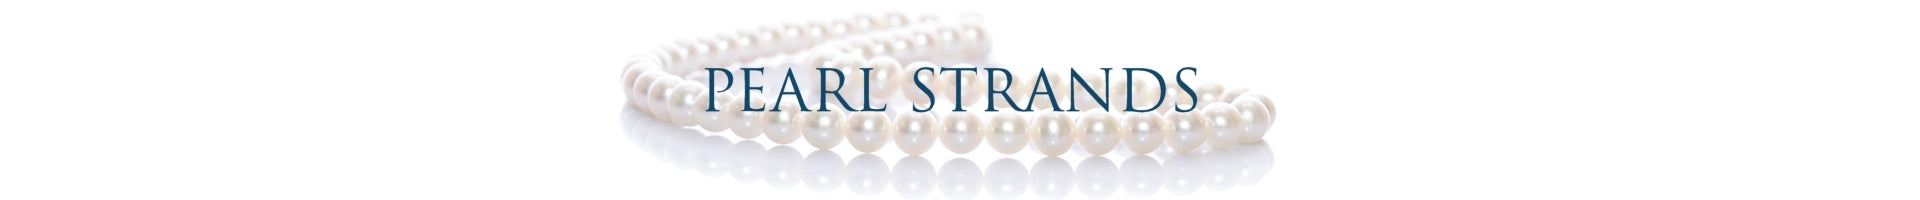 Imperial Pearl Strands